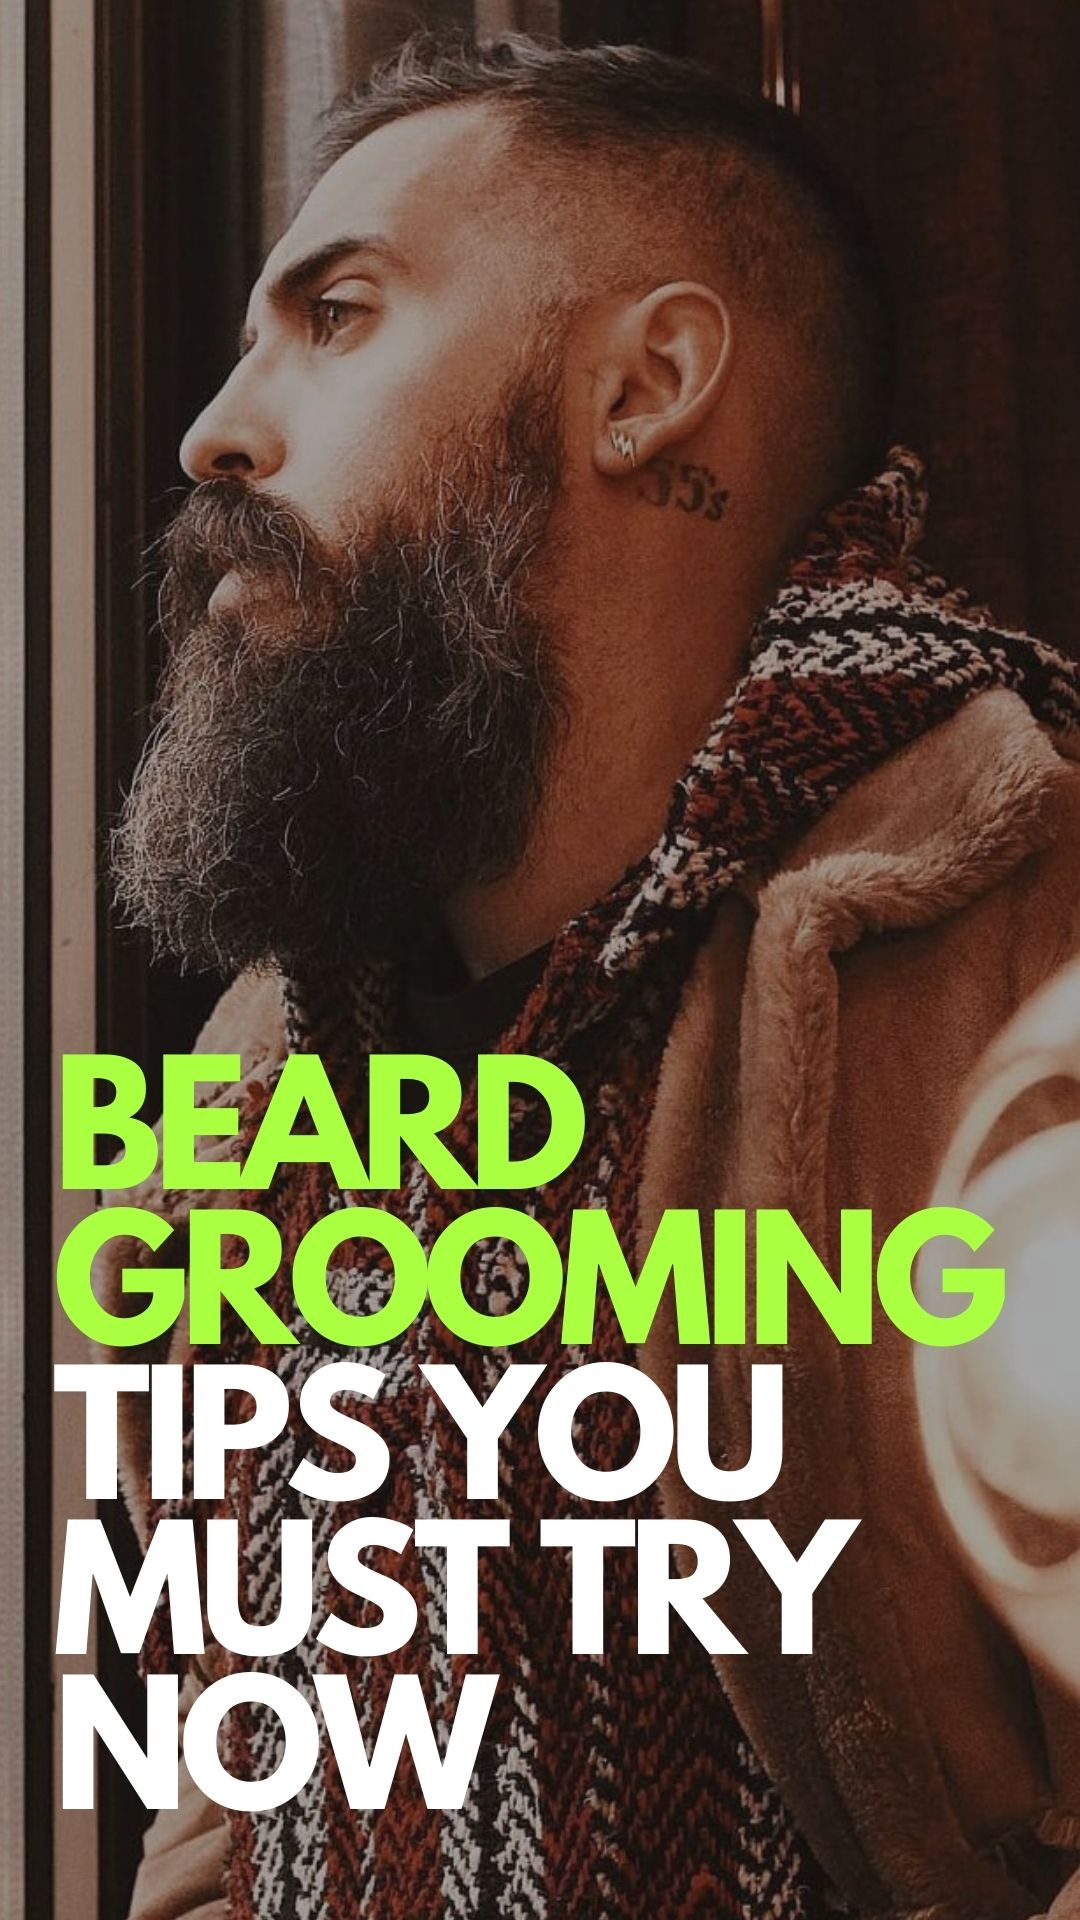 Beard Grooming Tips You Must Try